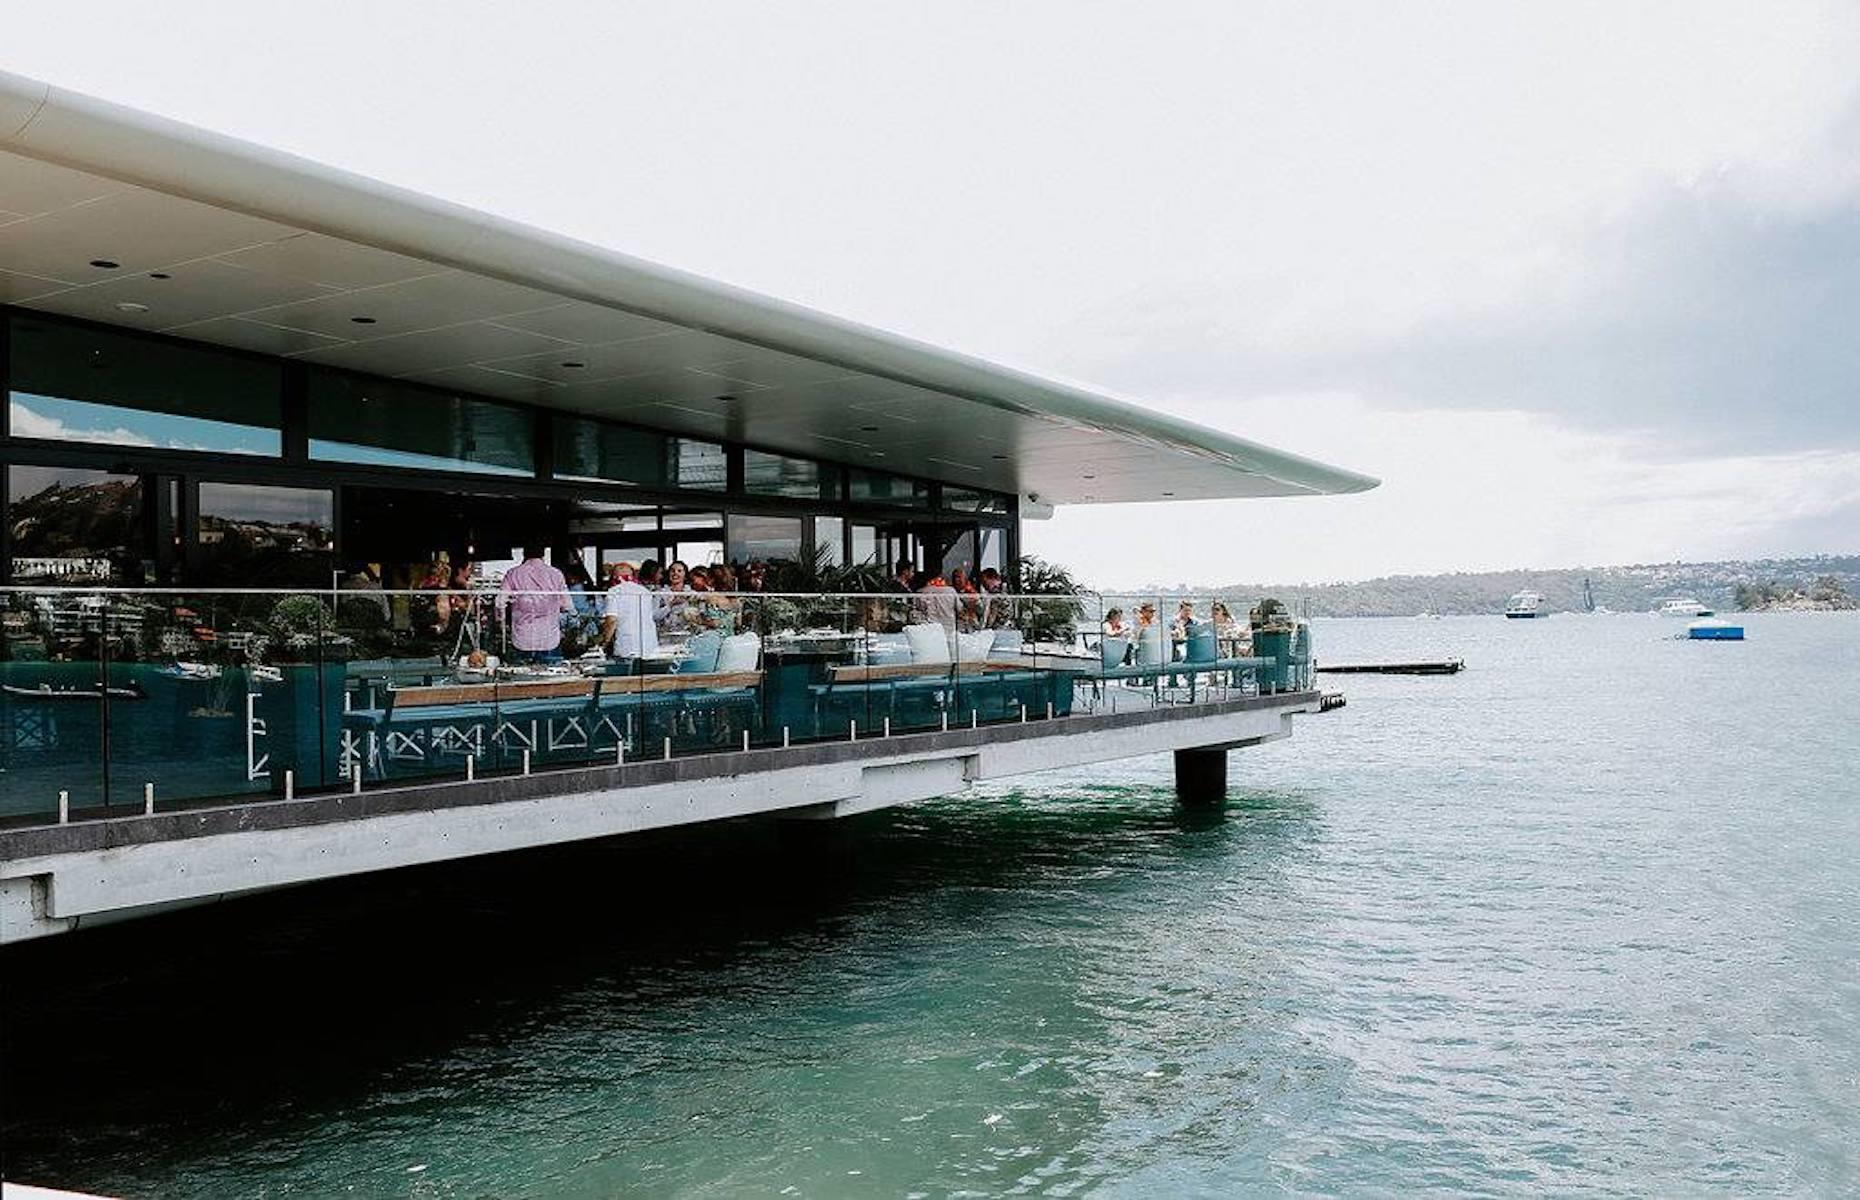 "Slide 28 of 36: The Empire Lounge, which opened in 2017, is a fantastic waterside cocktail bar and restaurant that doubles as the terminal. It's also popular with non-passengers who enjoy a drink as they watch the seaplanes come and go. There's also a little museum charting the history of the city's ""flying boats"", which first took the skies here in 1938 and played a key role in the Second World War. Australia's borders are currently closed to non-residents."